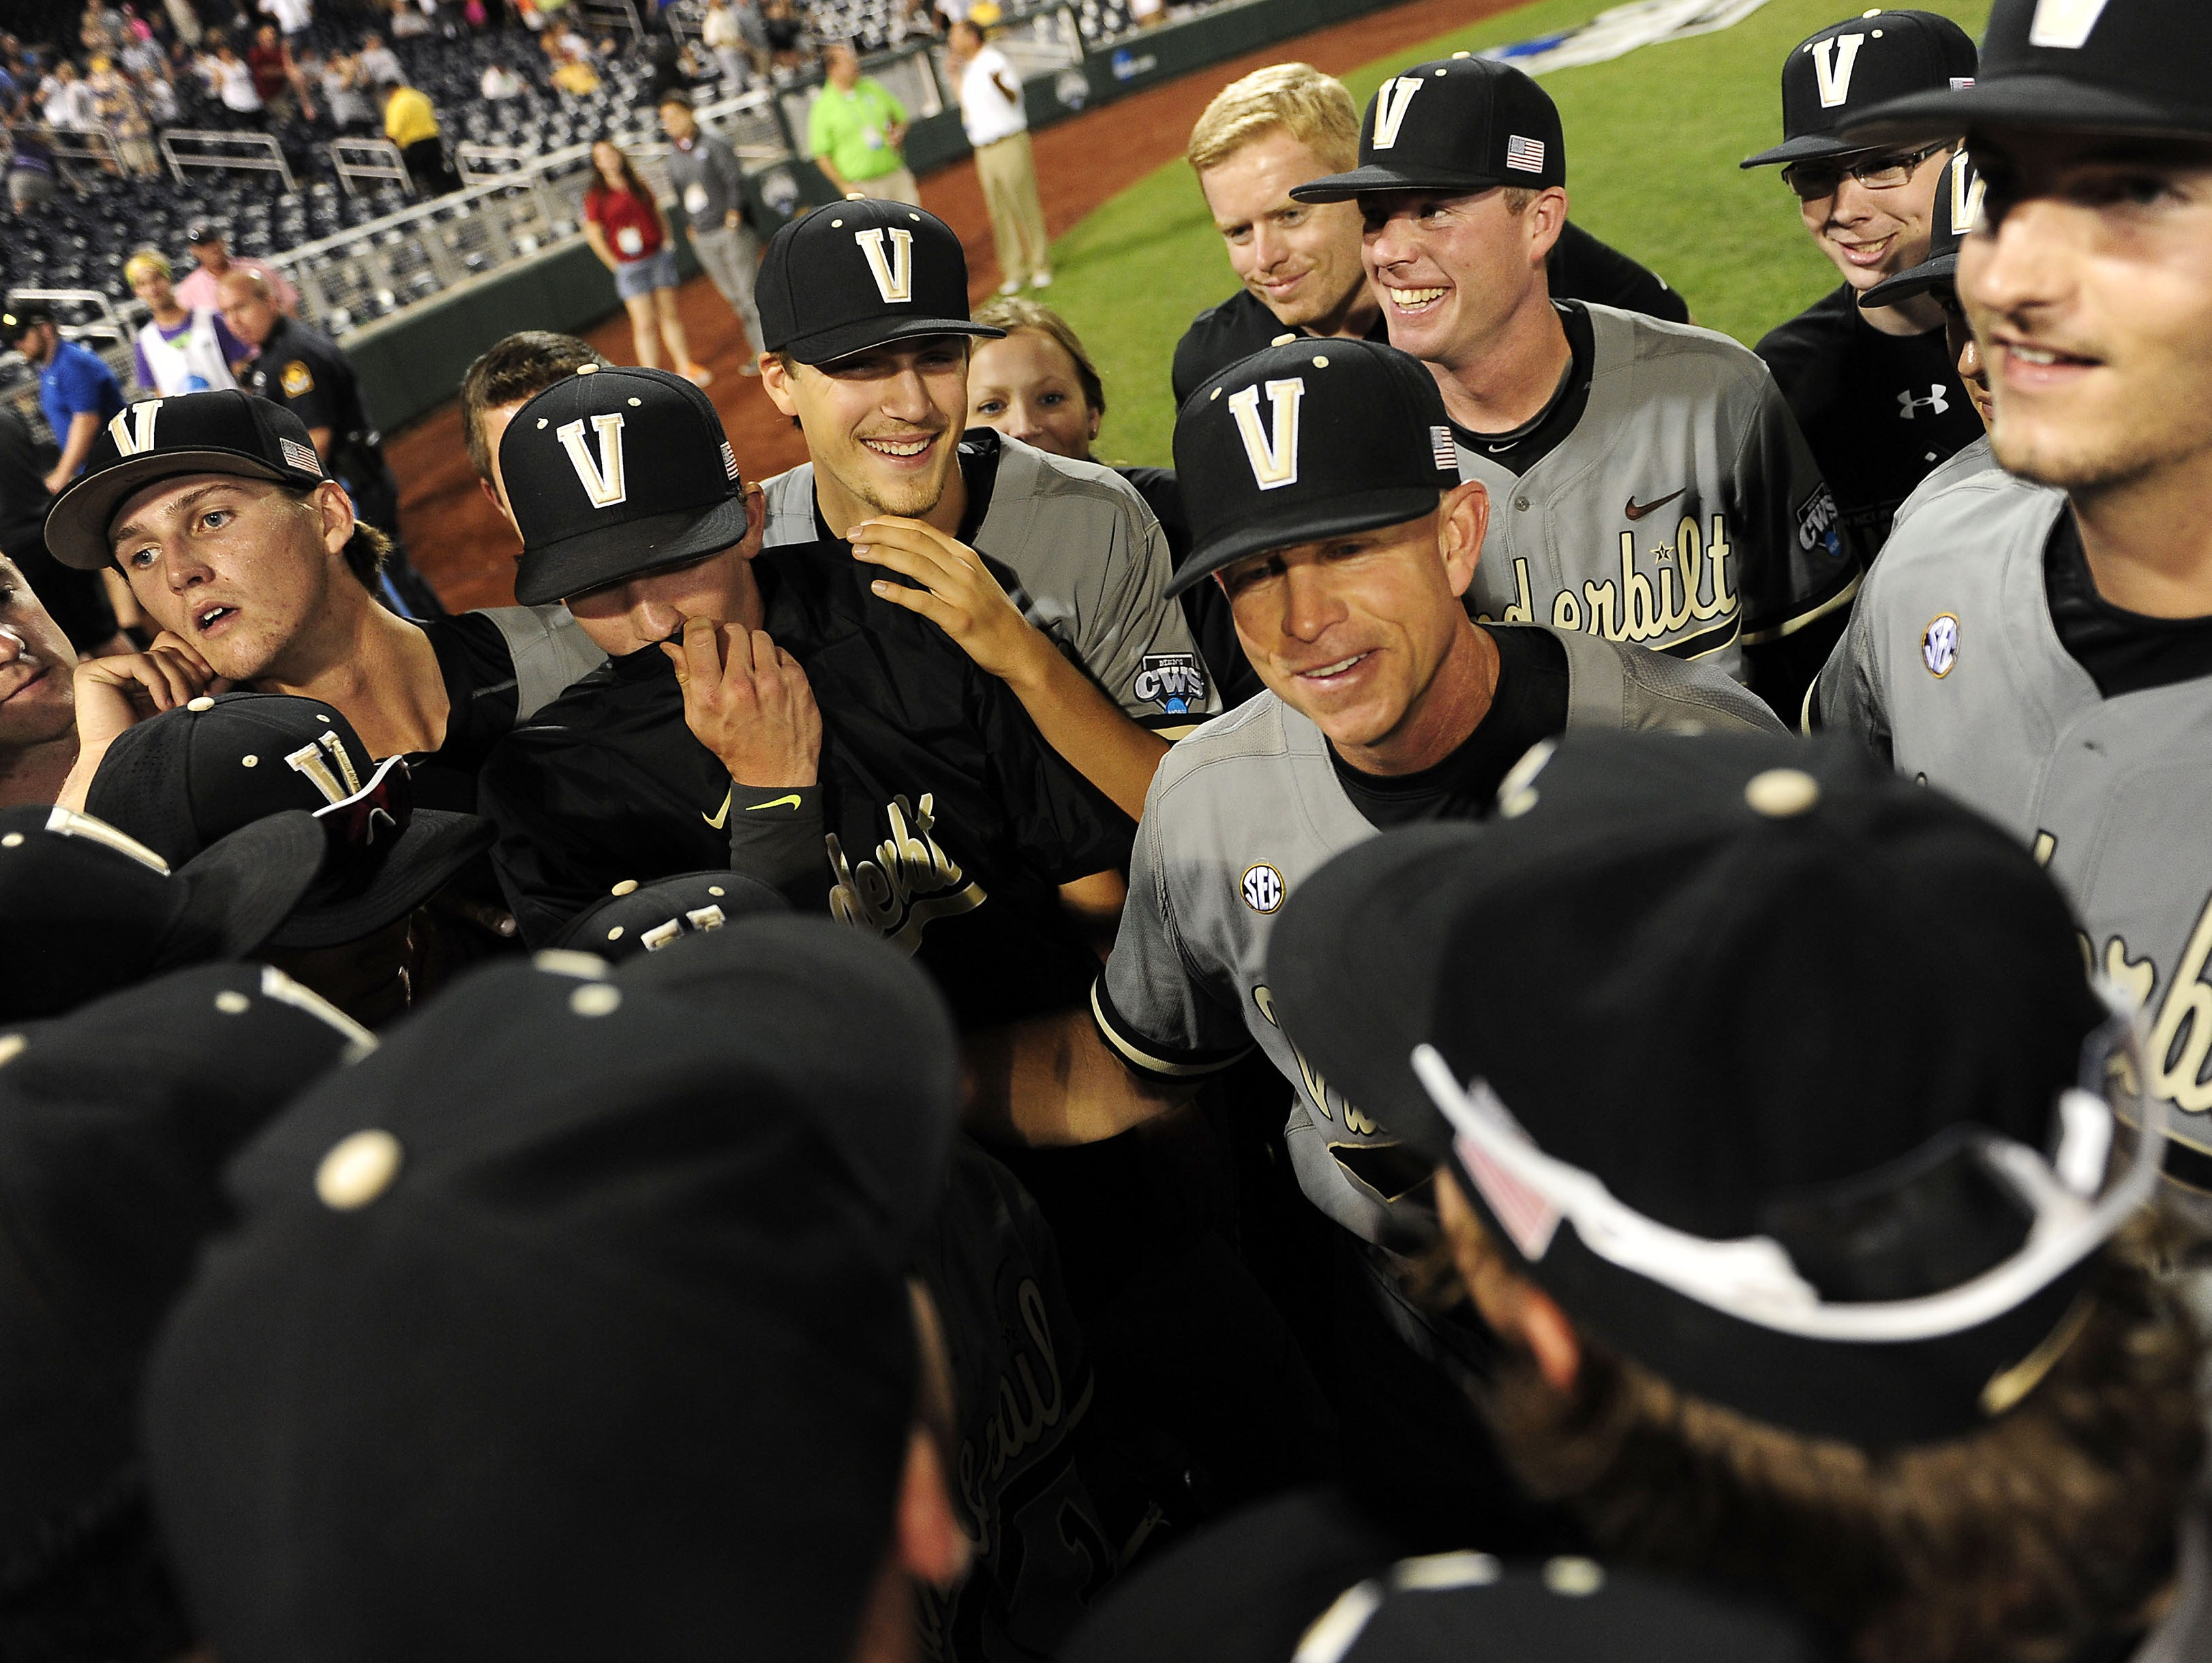 Vanderbilt coach Tim Corbin, center, and his team will travel to Washington, D.C., on Wednesday for a fall break trip.